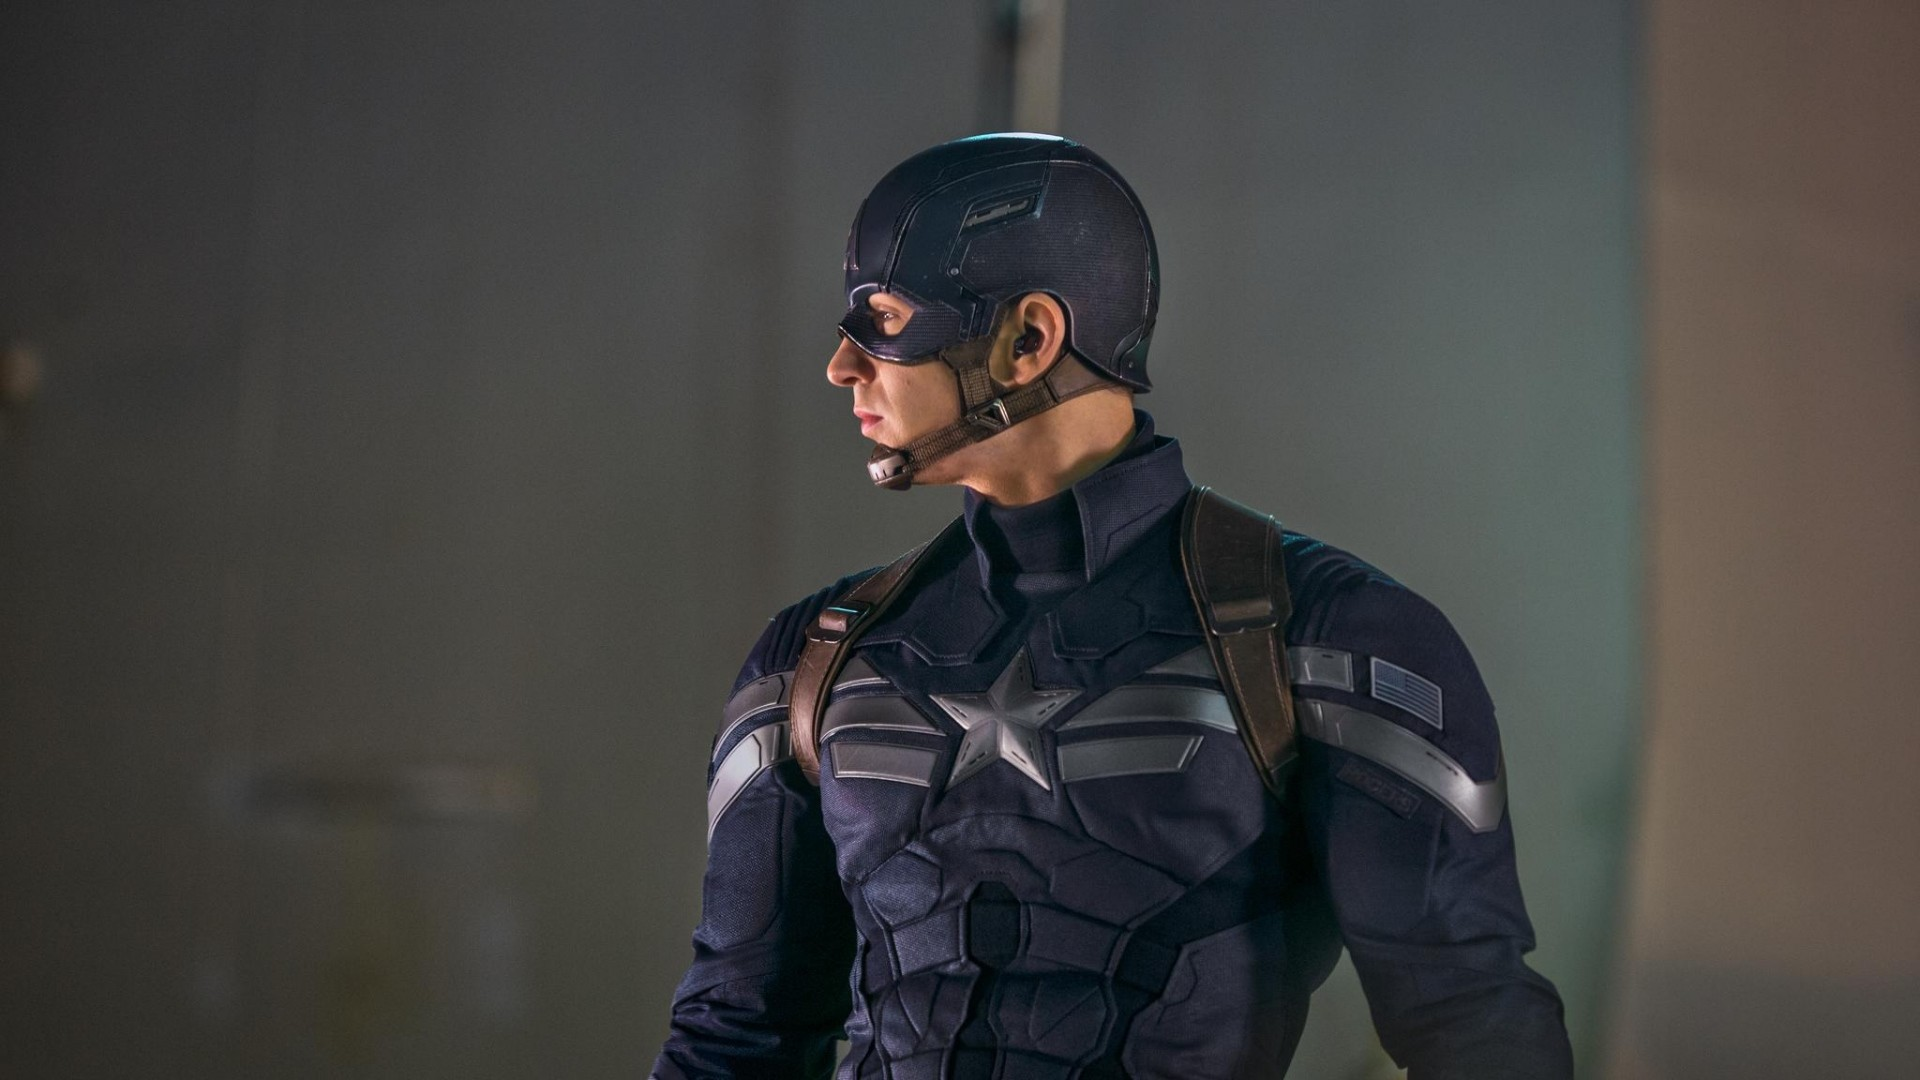 1920x1080 Chris Evans in Captain America the Winter Soldier